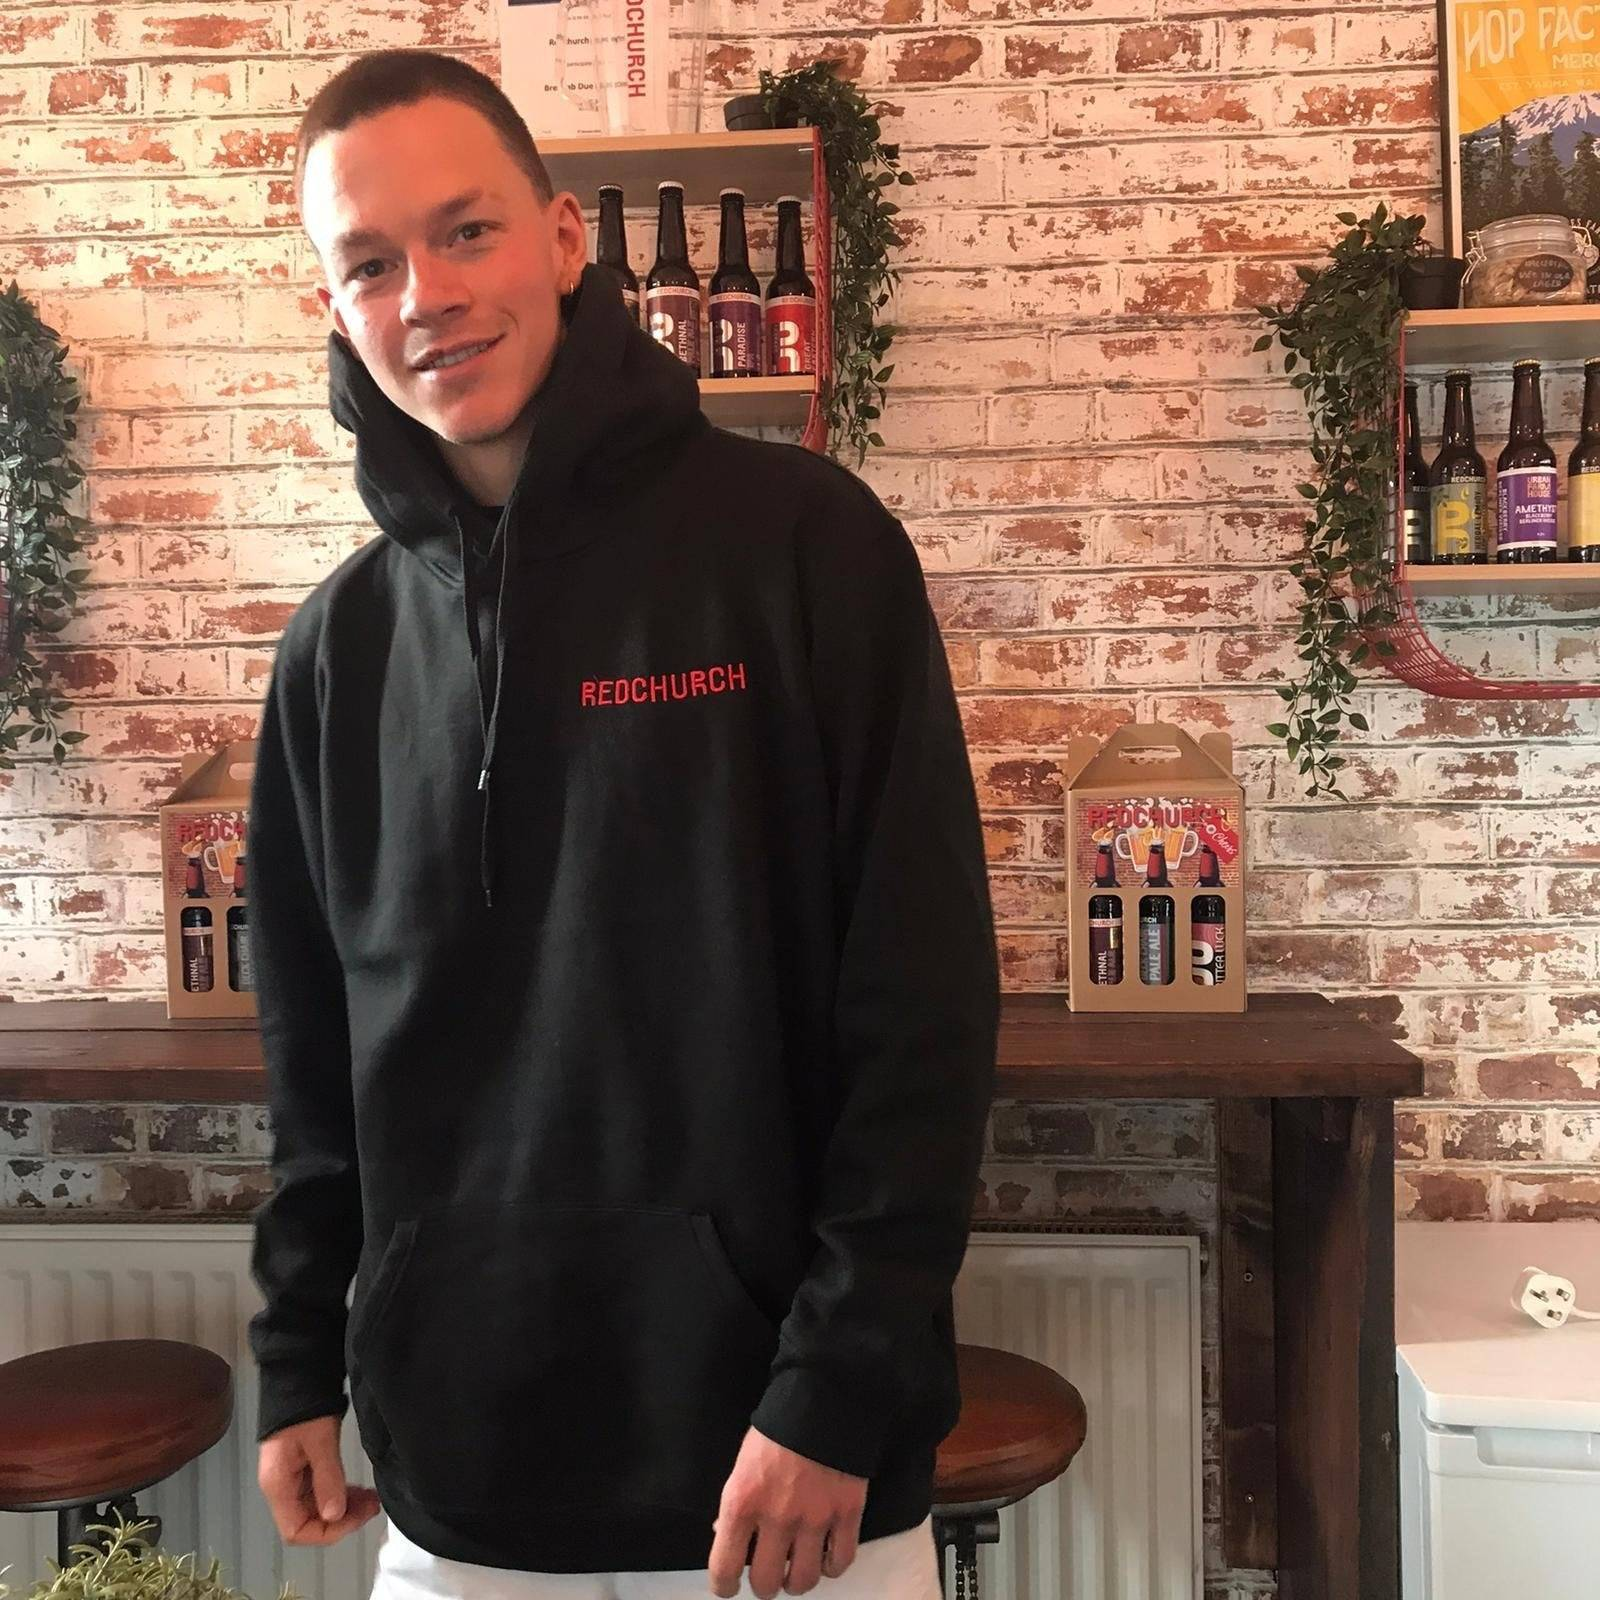 Redchurch Brewery Redchurch Embroidered Hoodie - Large  42-44